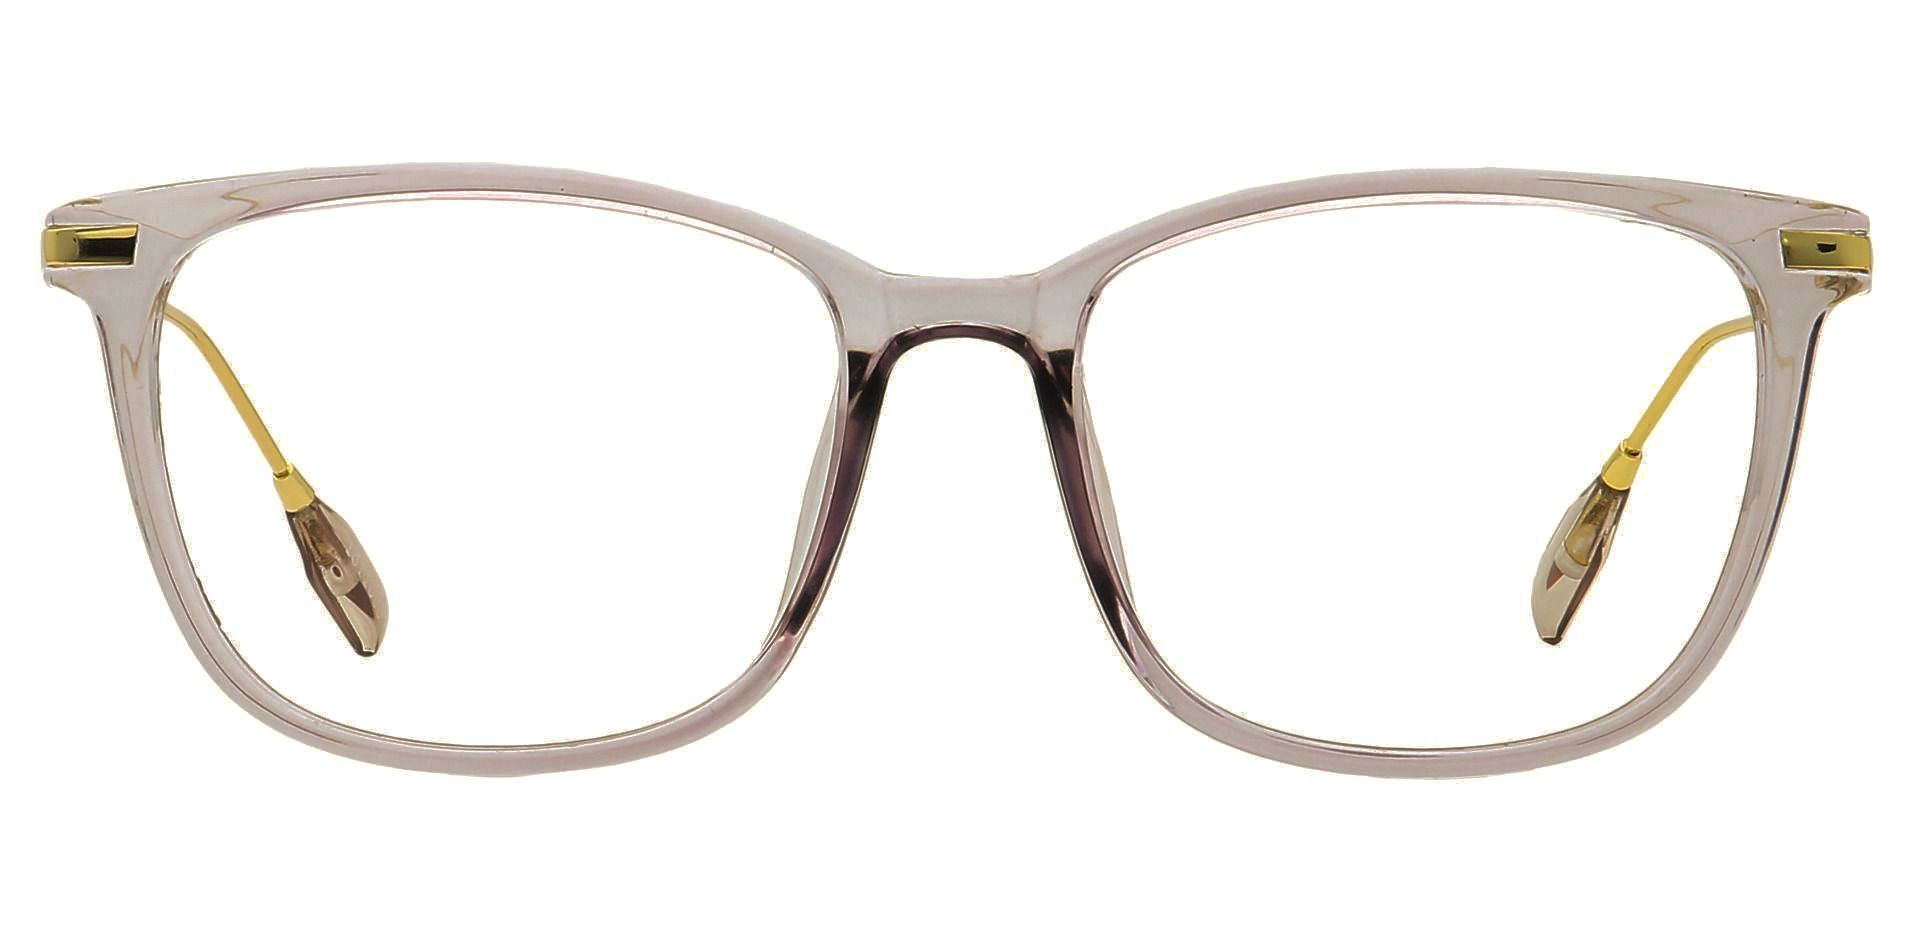 Katie Oval Progressive Glasses - The Frame Is Clear With Light Purple